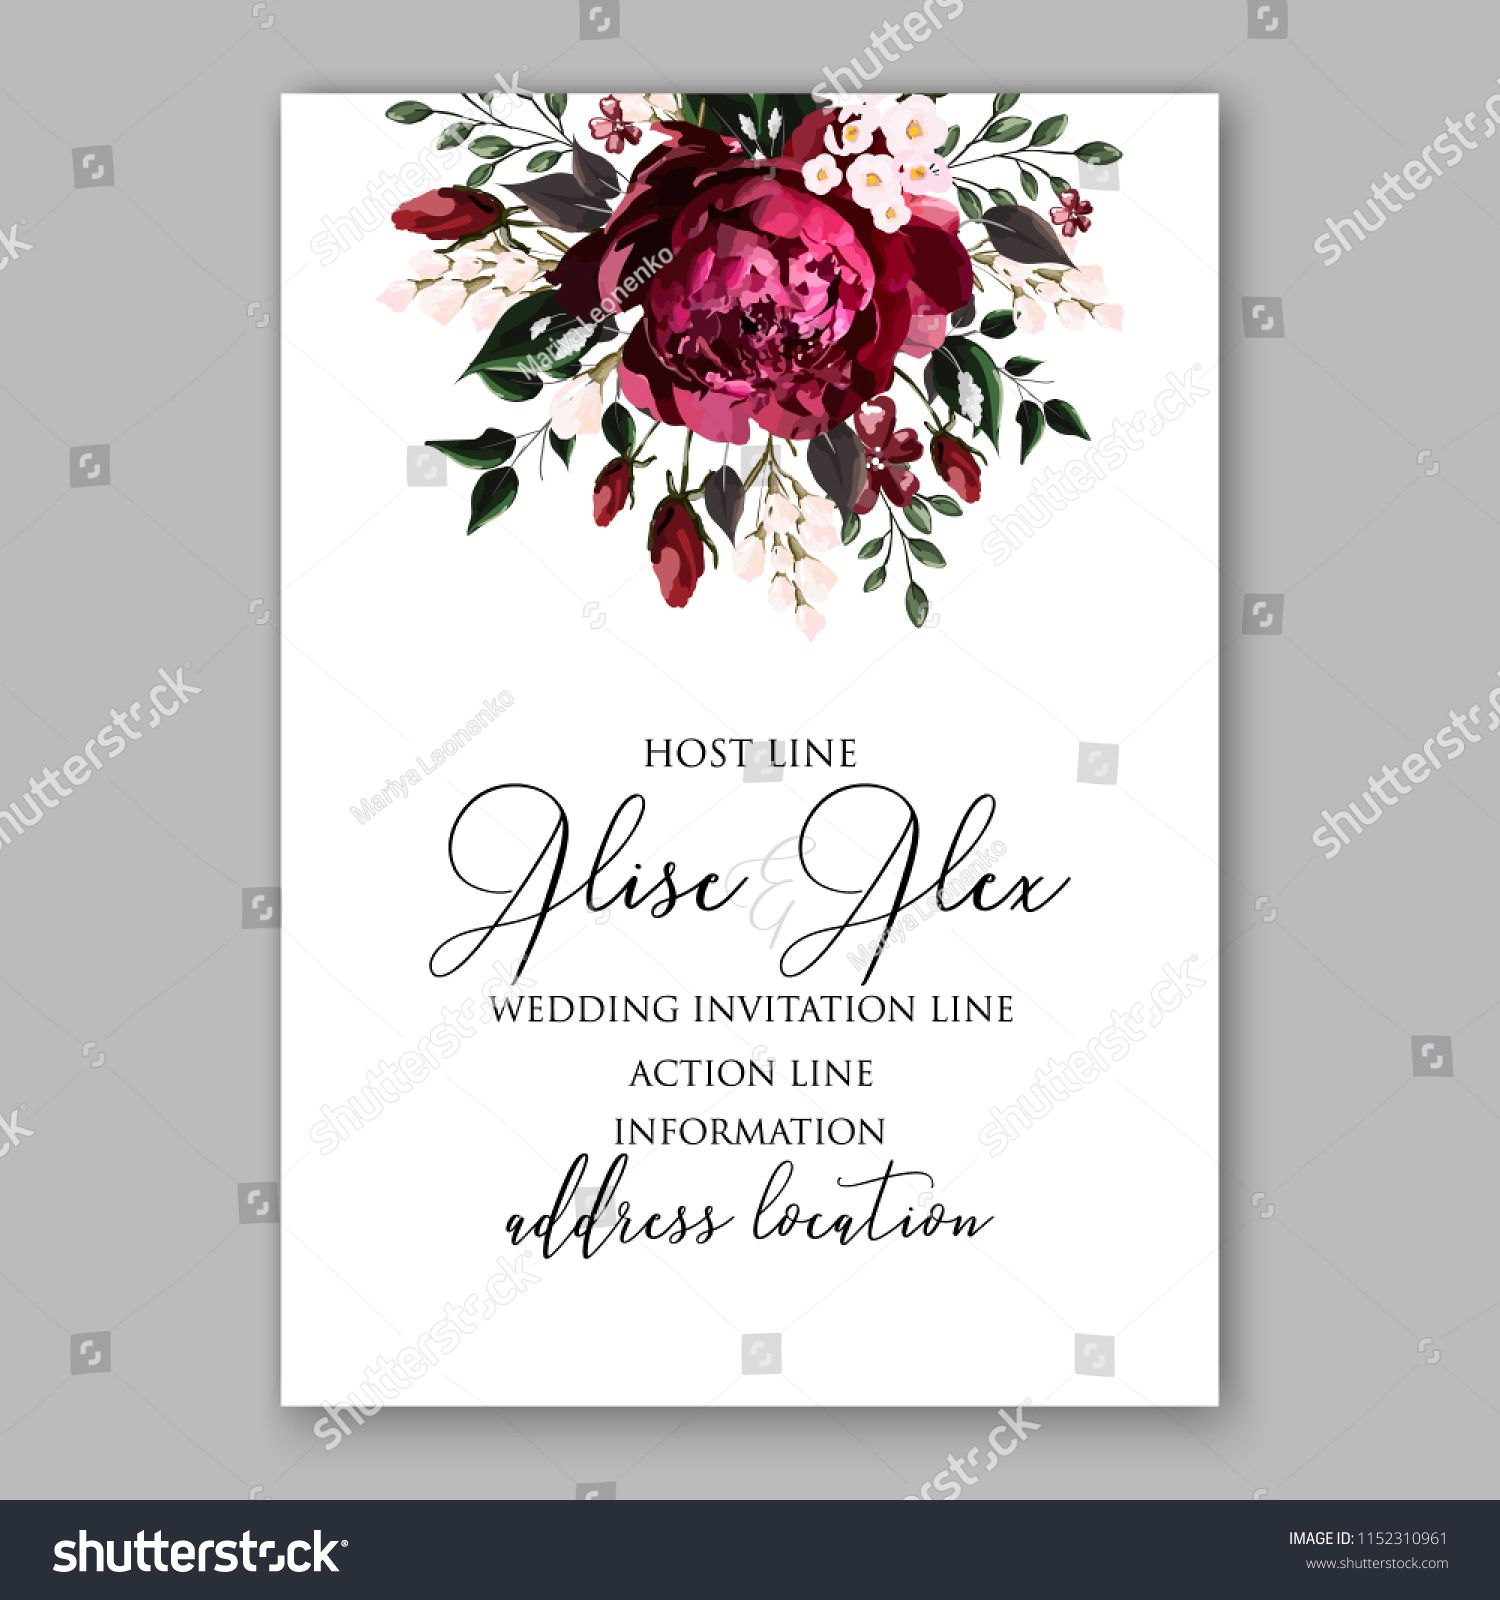 Marsala Dark Red Peony Wedding Invitation Vector Floral